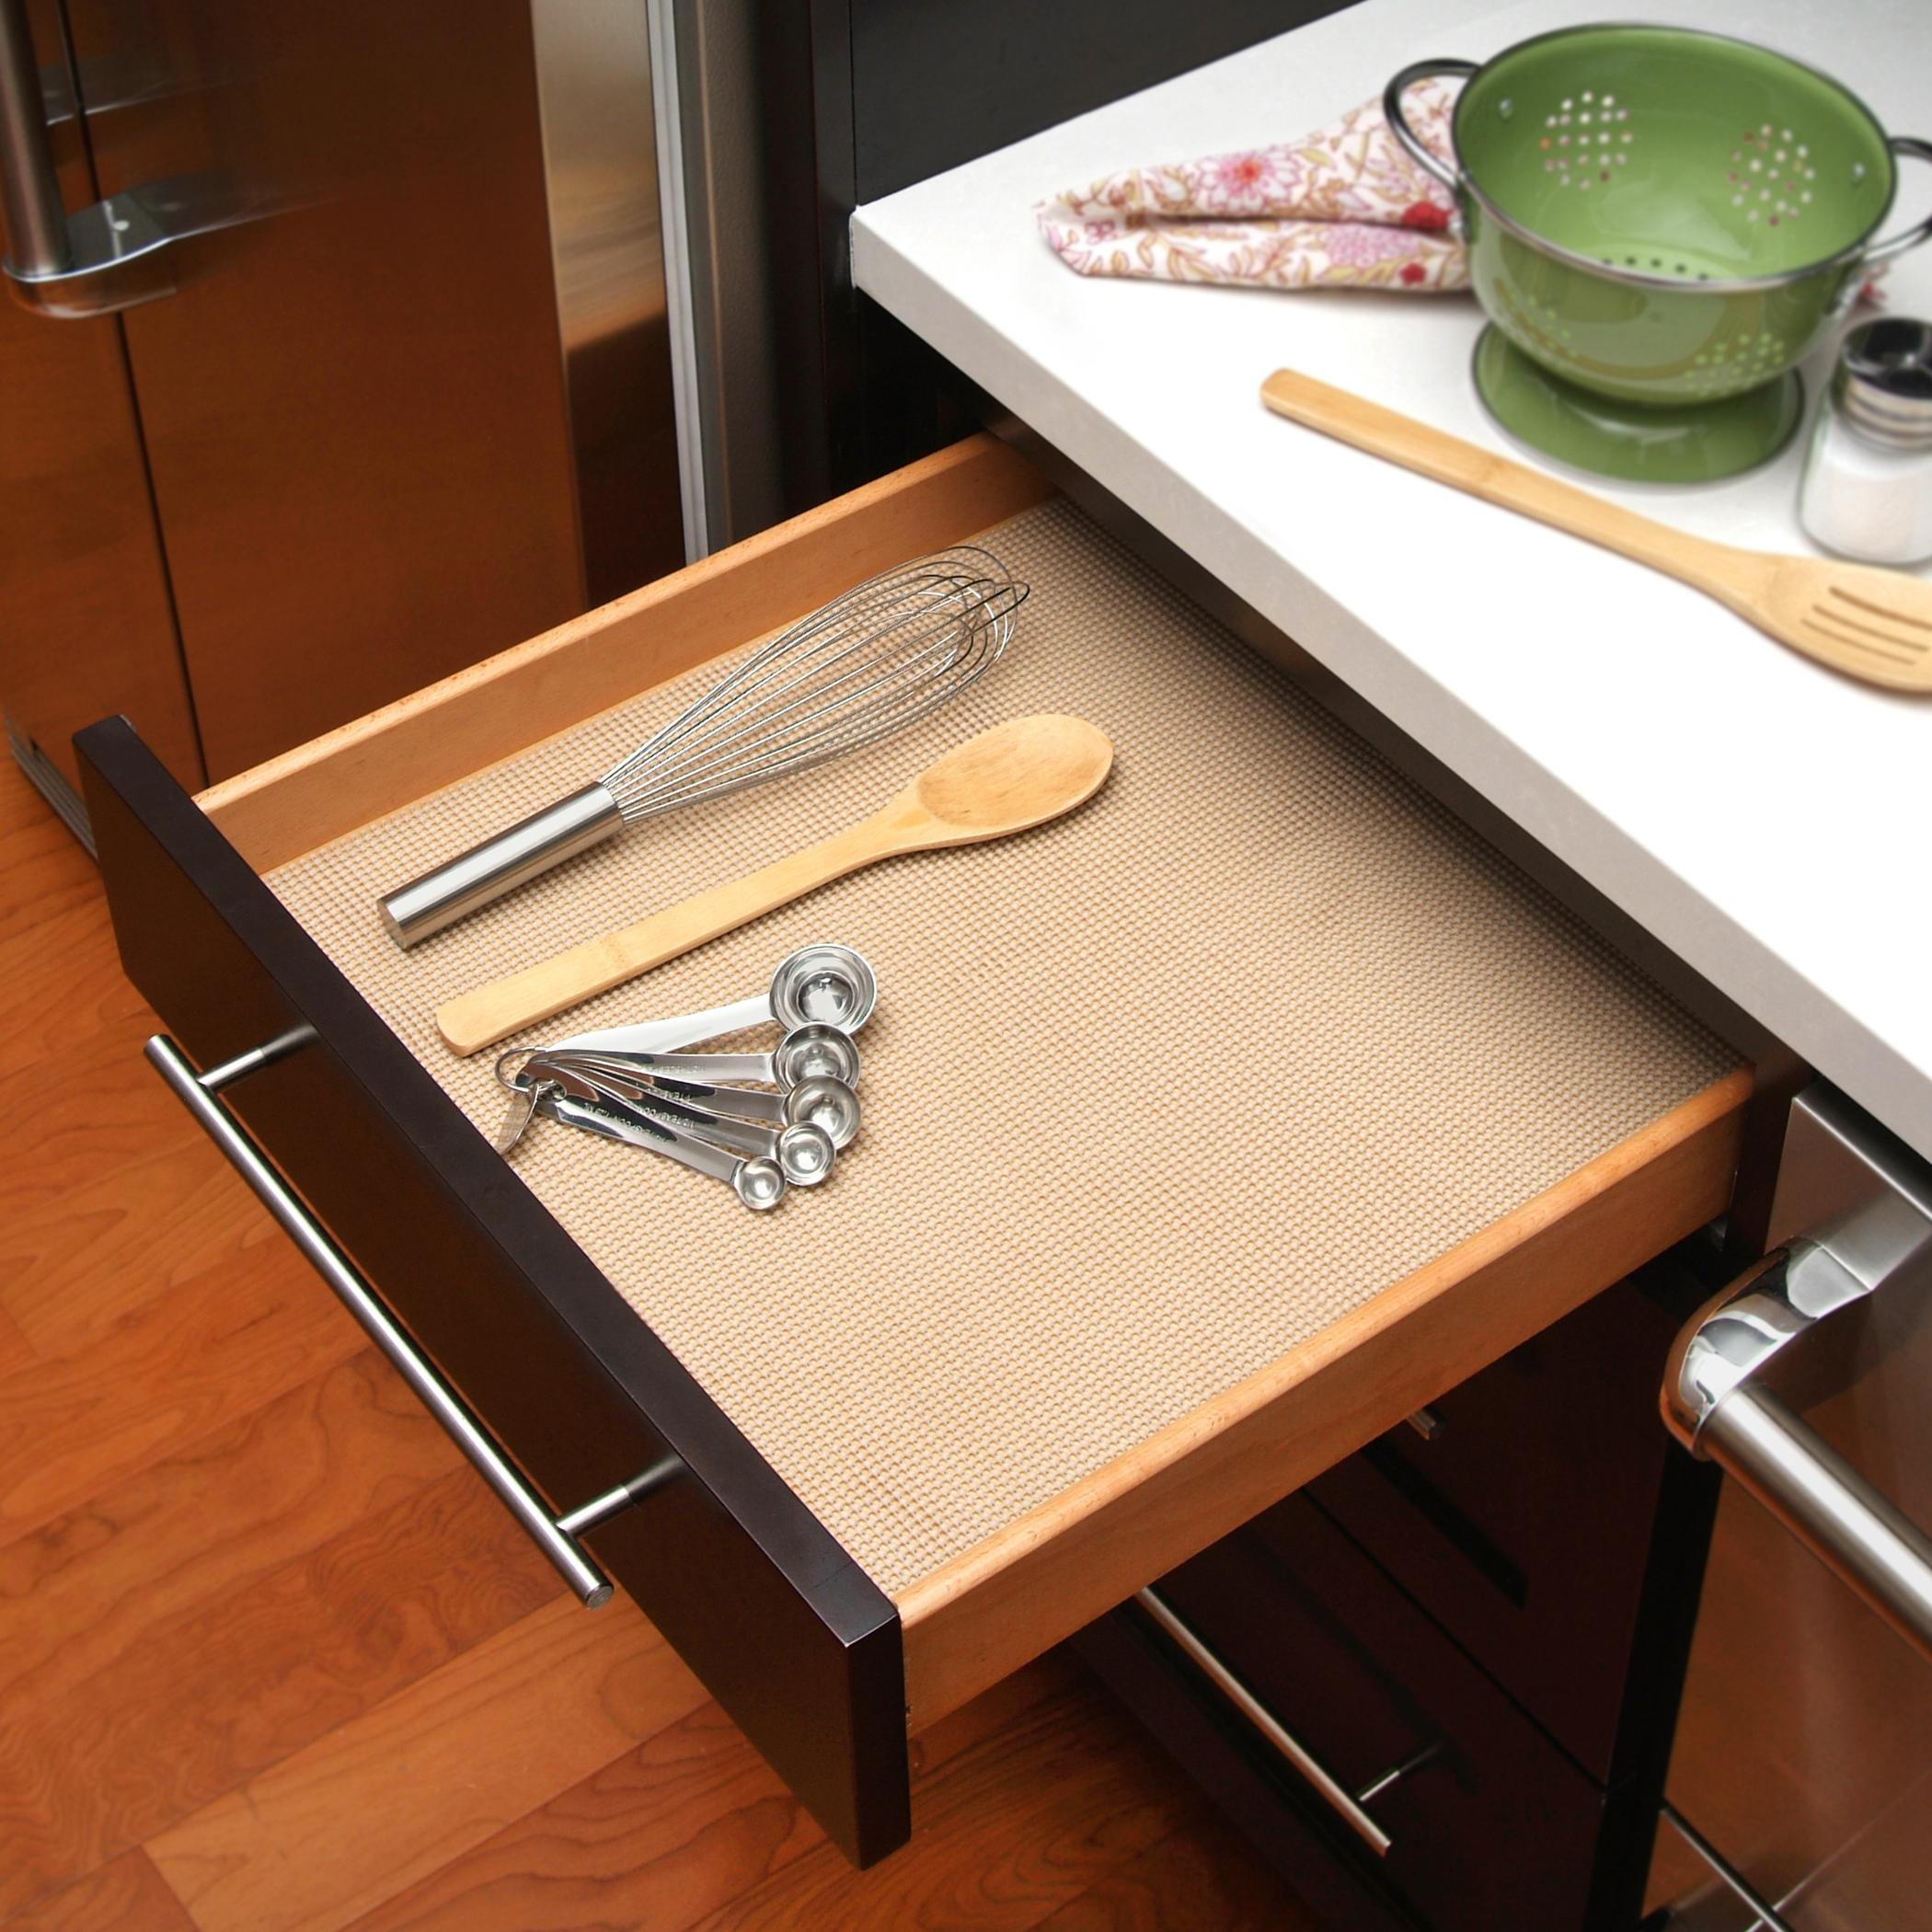 What Is The Best Shelf Liner For Kitchen Cabinets: Con-Tact Brand Grip Non-Adhesive Non-Slip